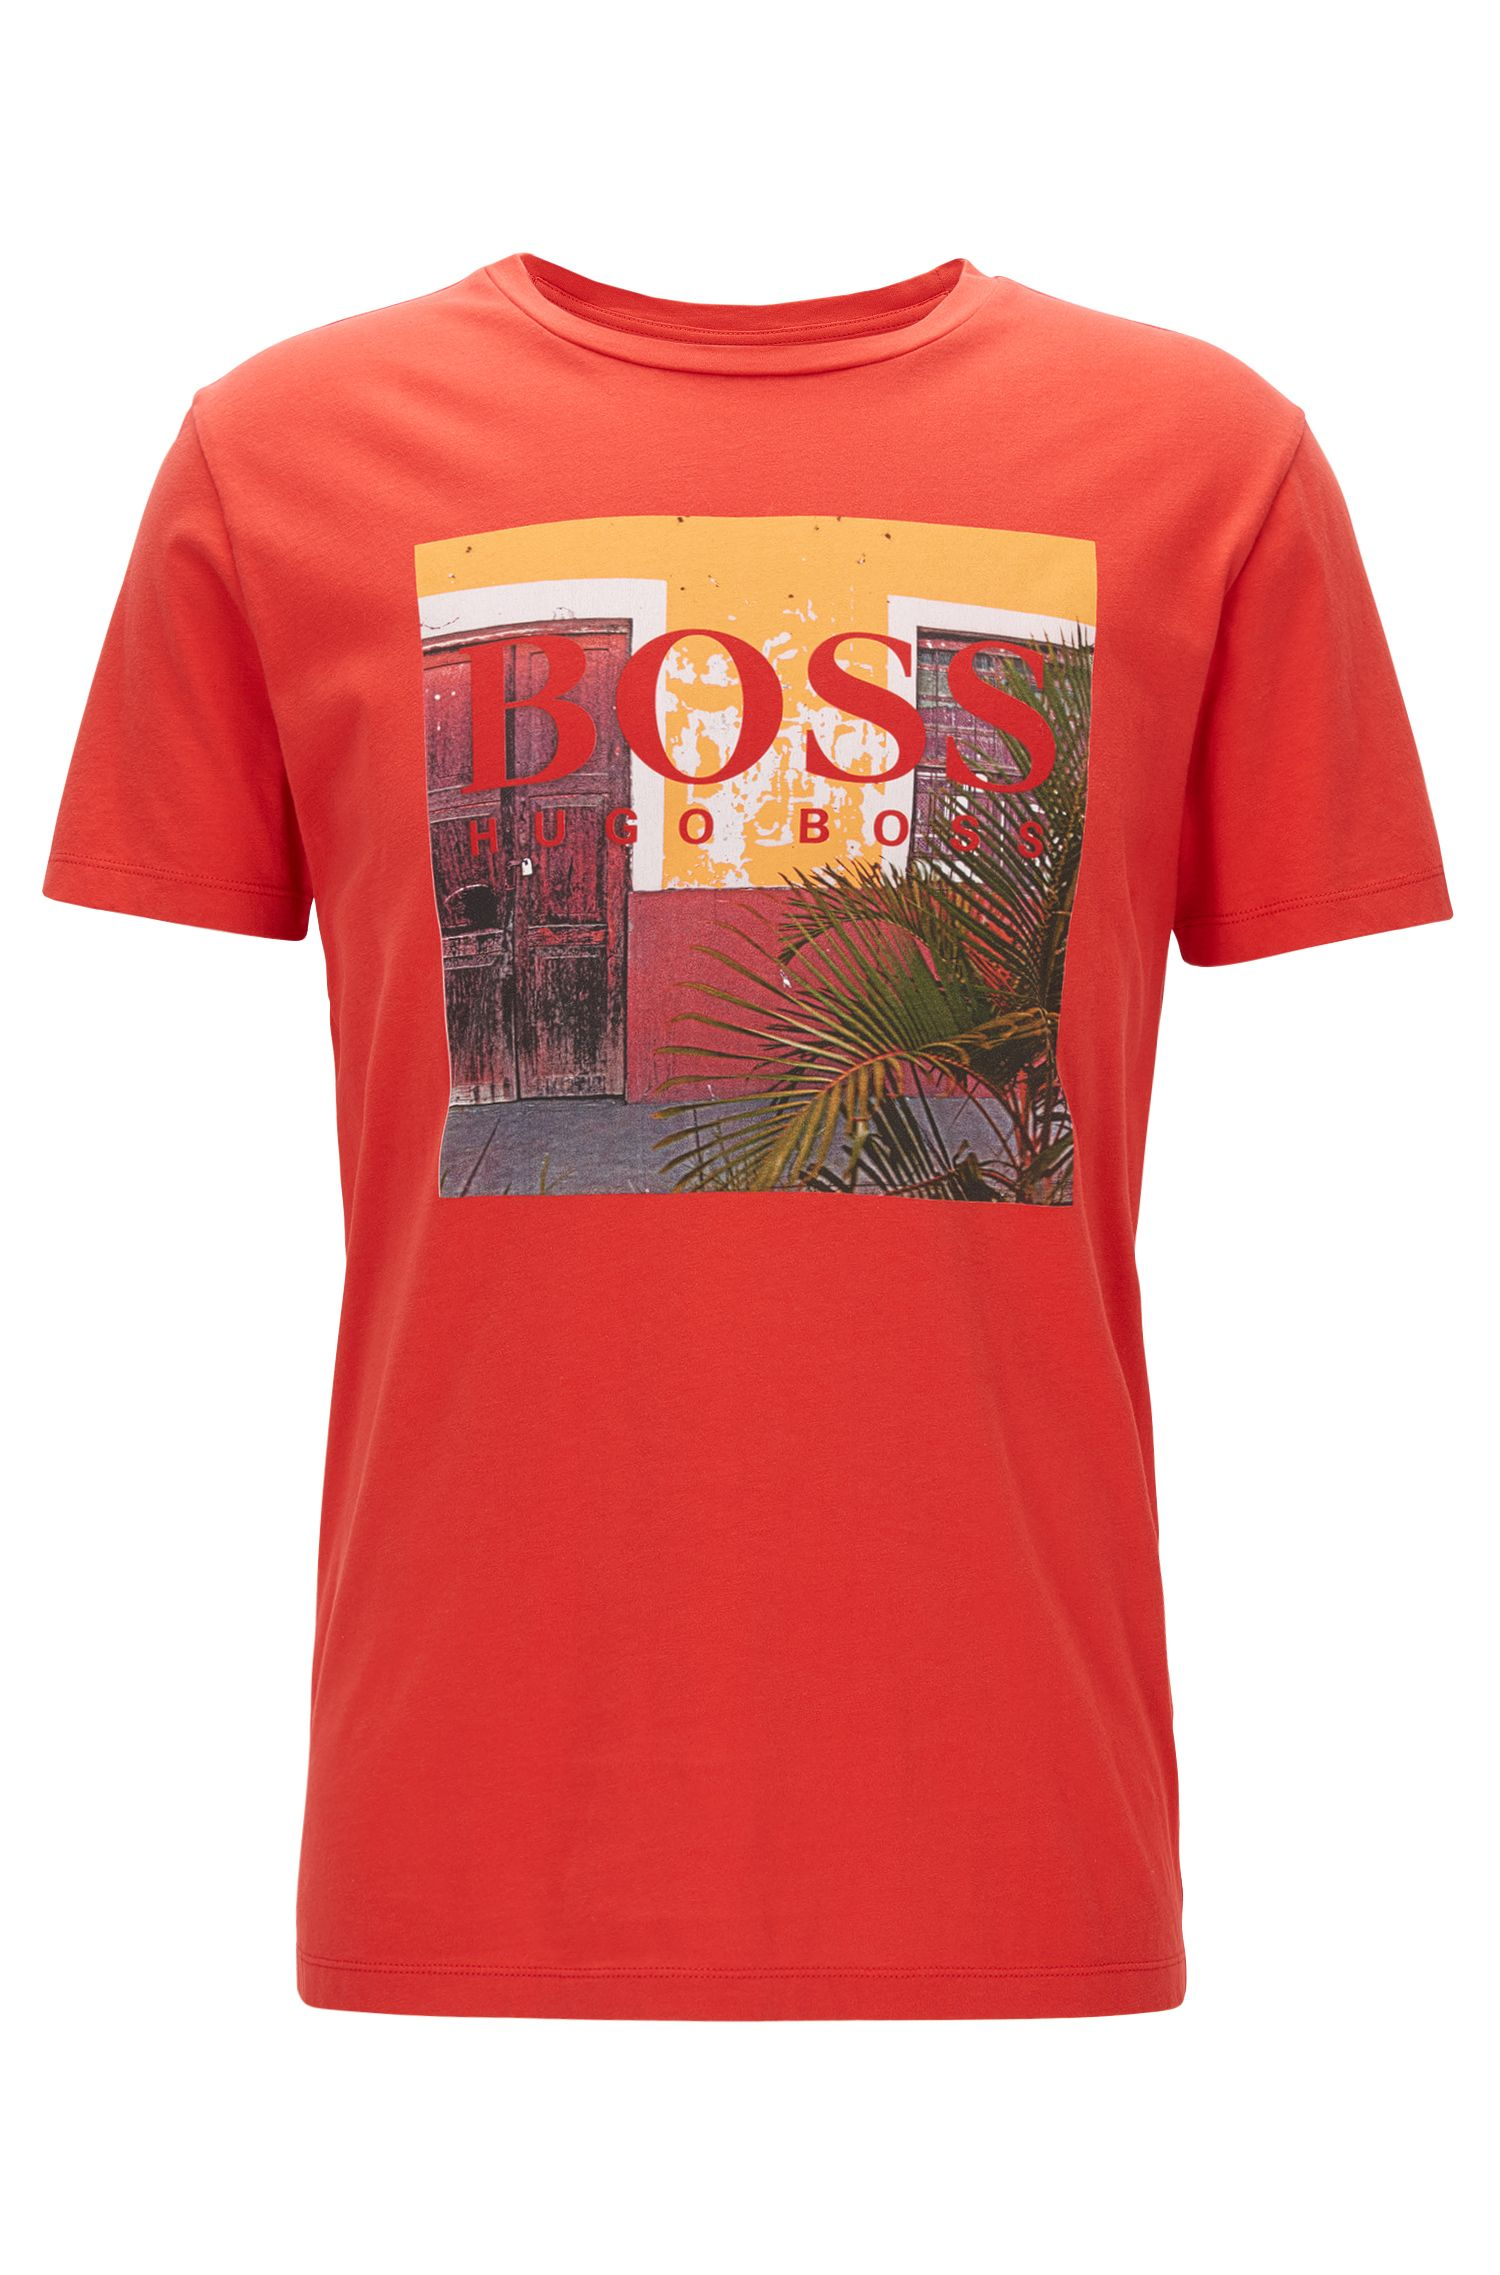 Regular-fit graphic-print T-shirt in washed cotton jersey, Red